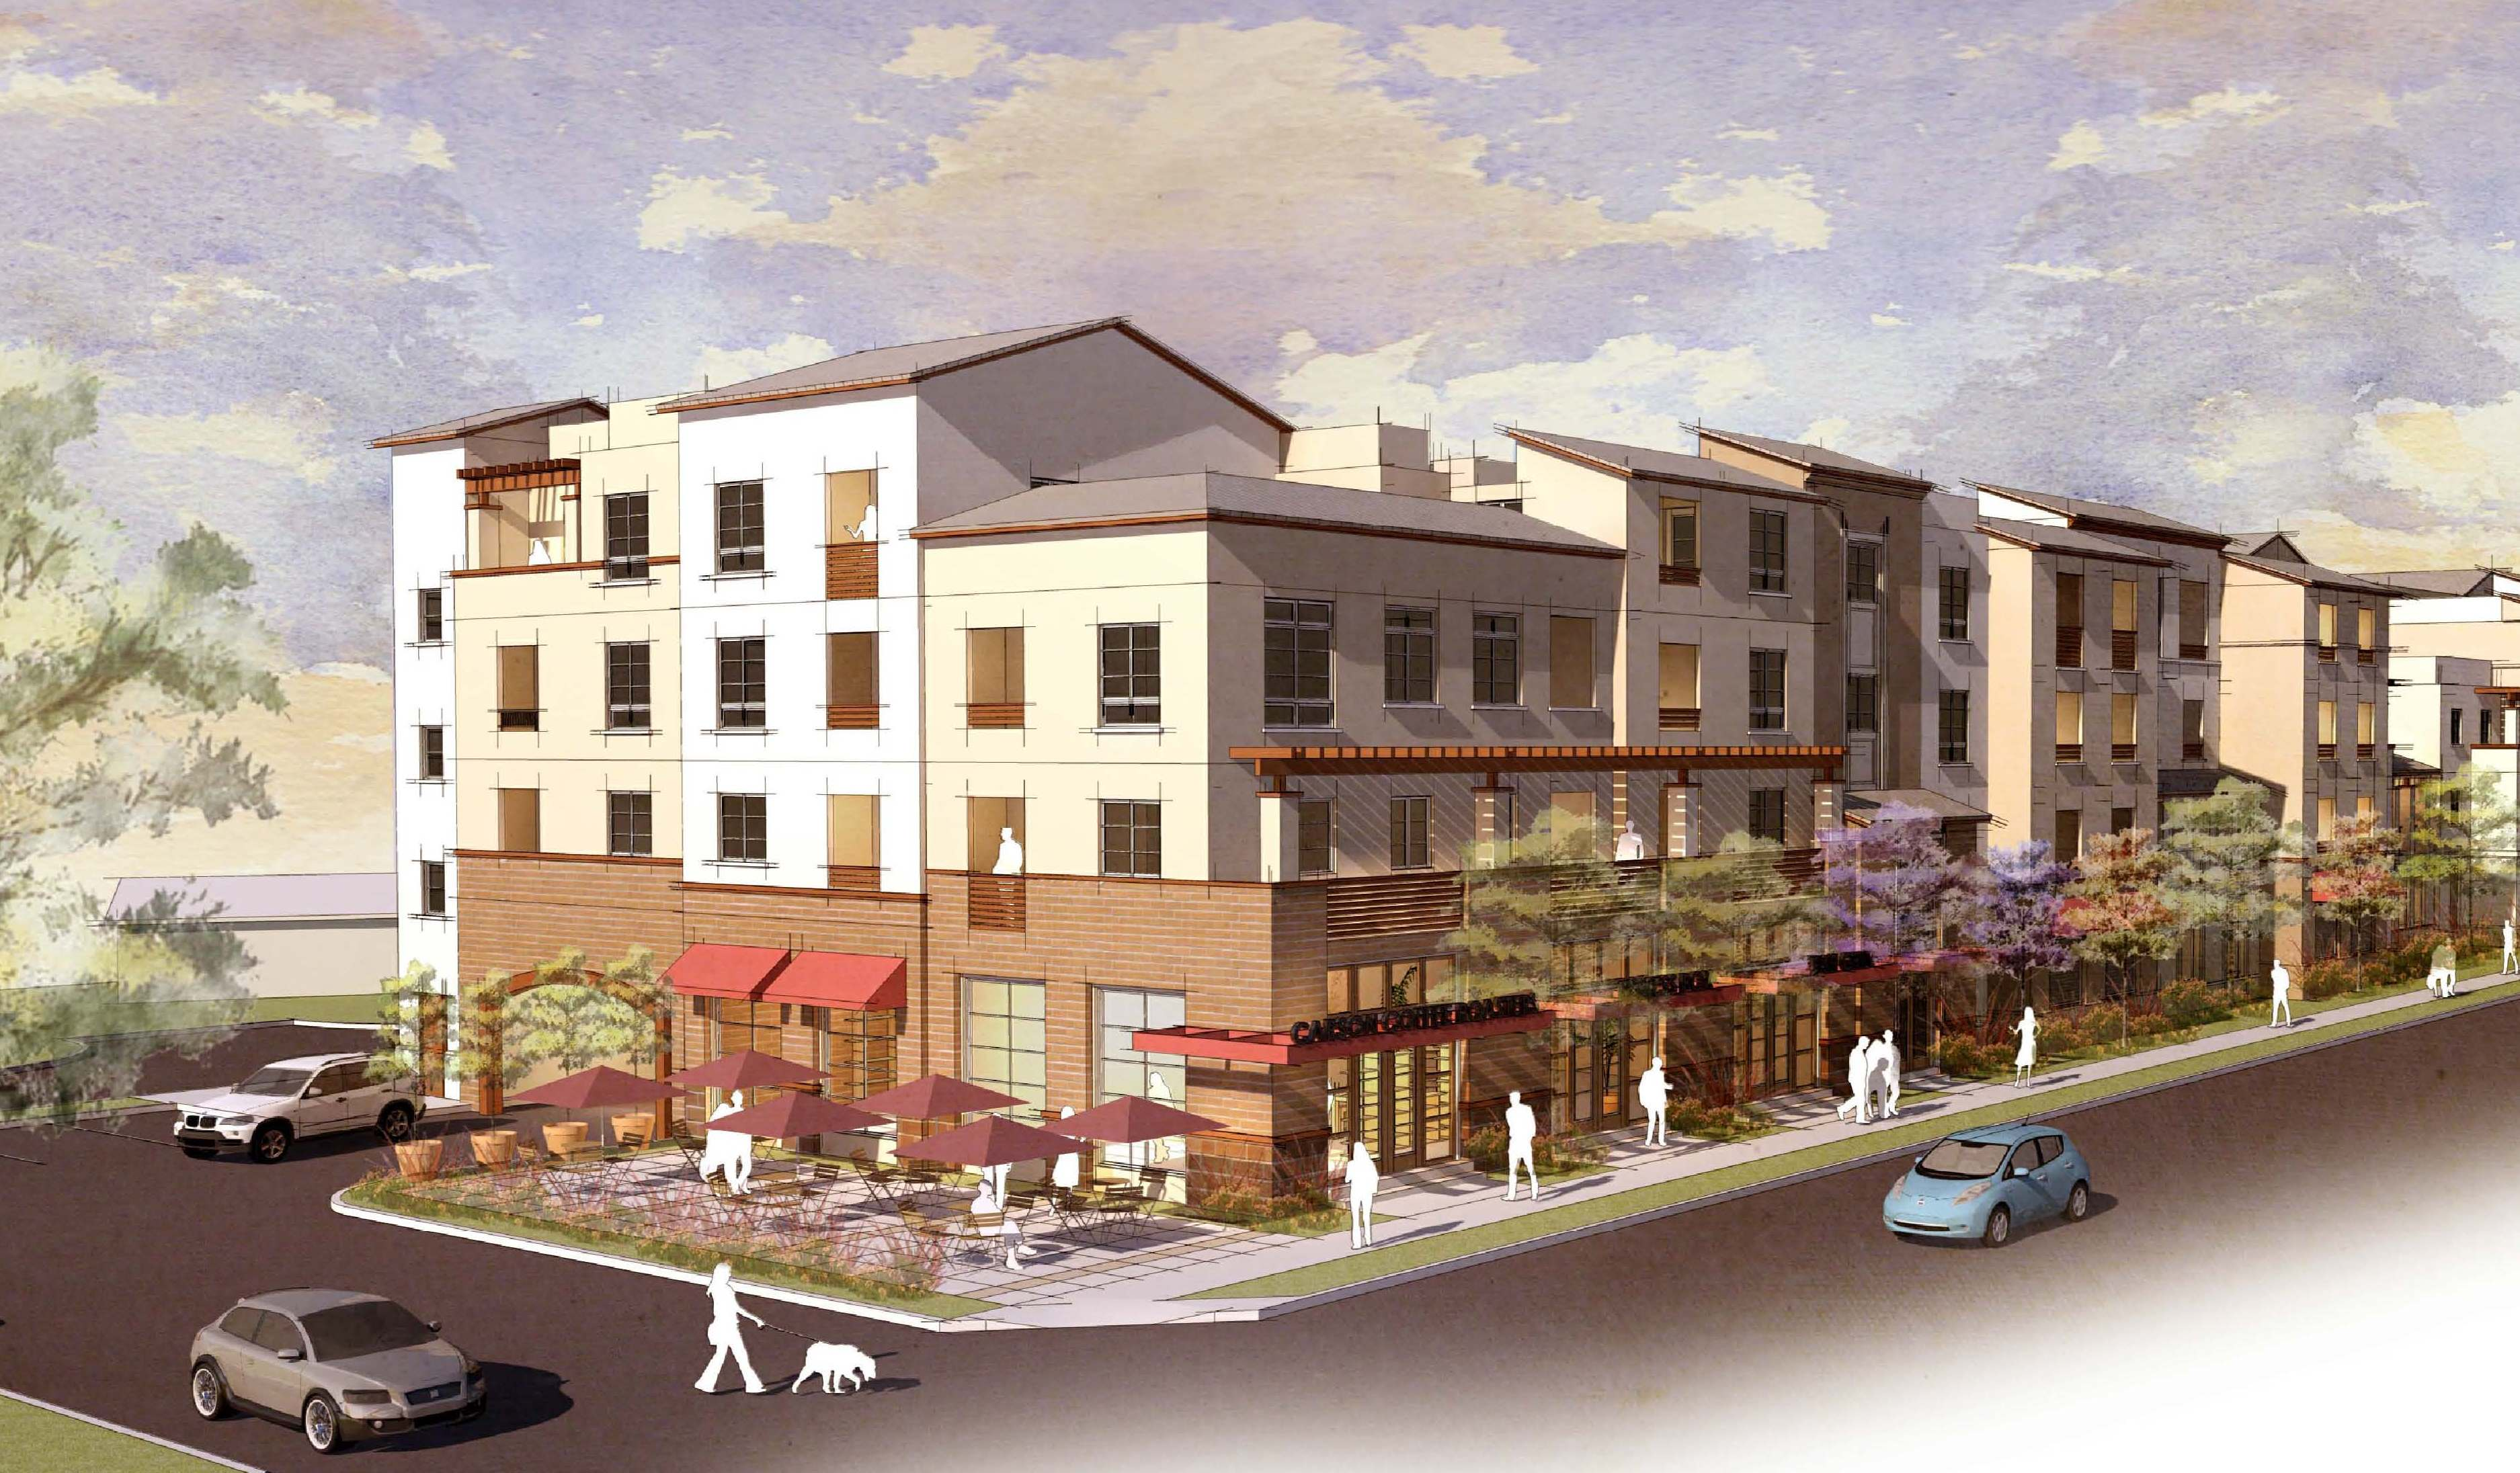 Affirmed Housing Breaks Ground on Senior Affordable Homes